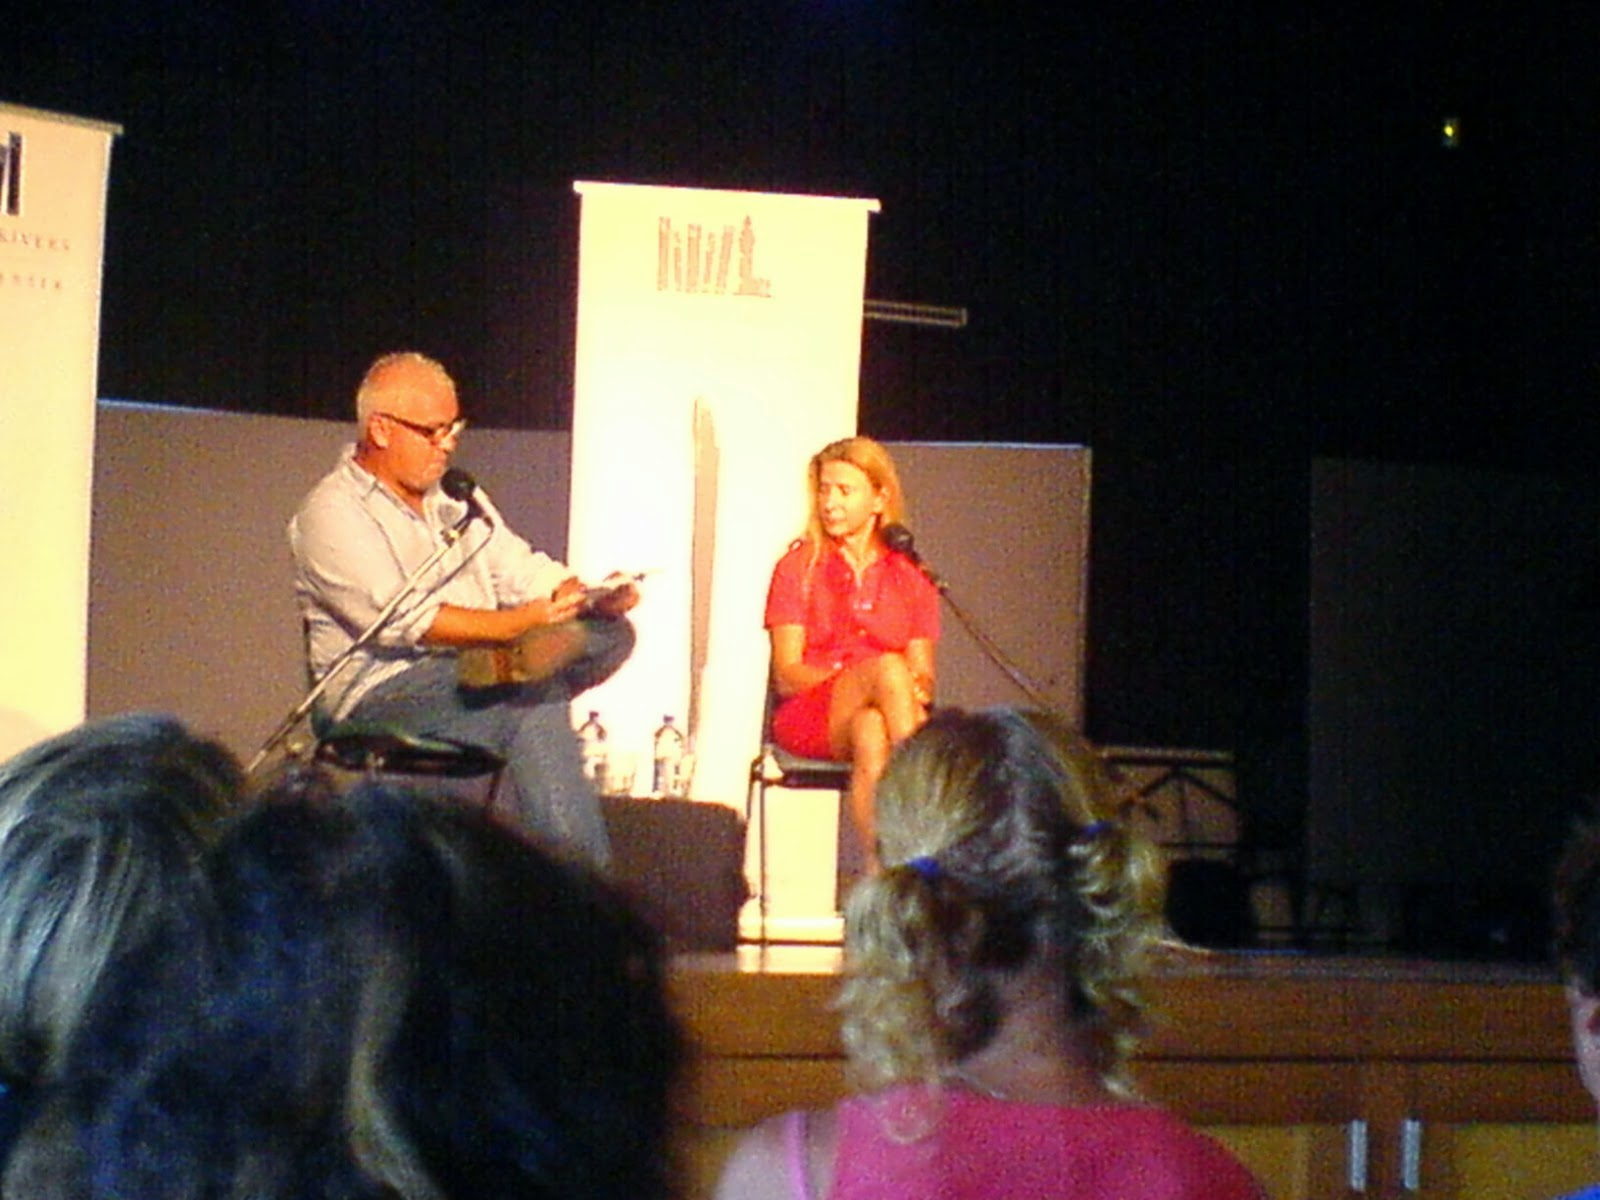 Lionel Shriver And Matthew Condon At St Finbar's Hall, March 1st, 2014